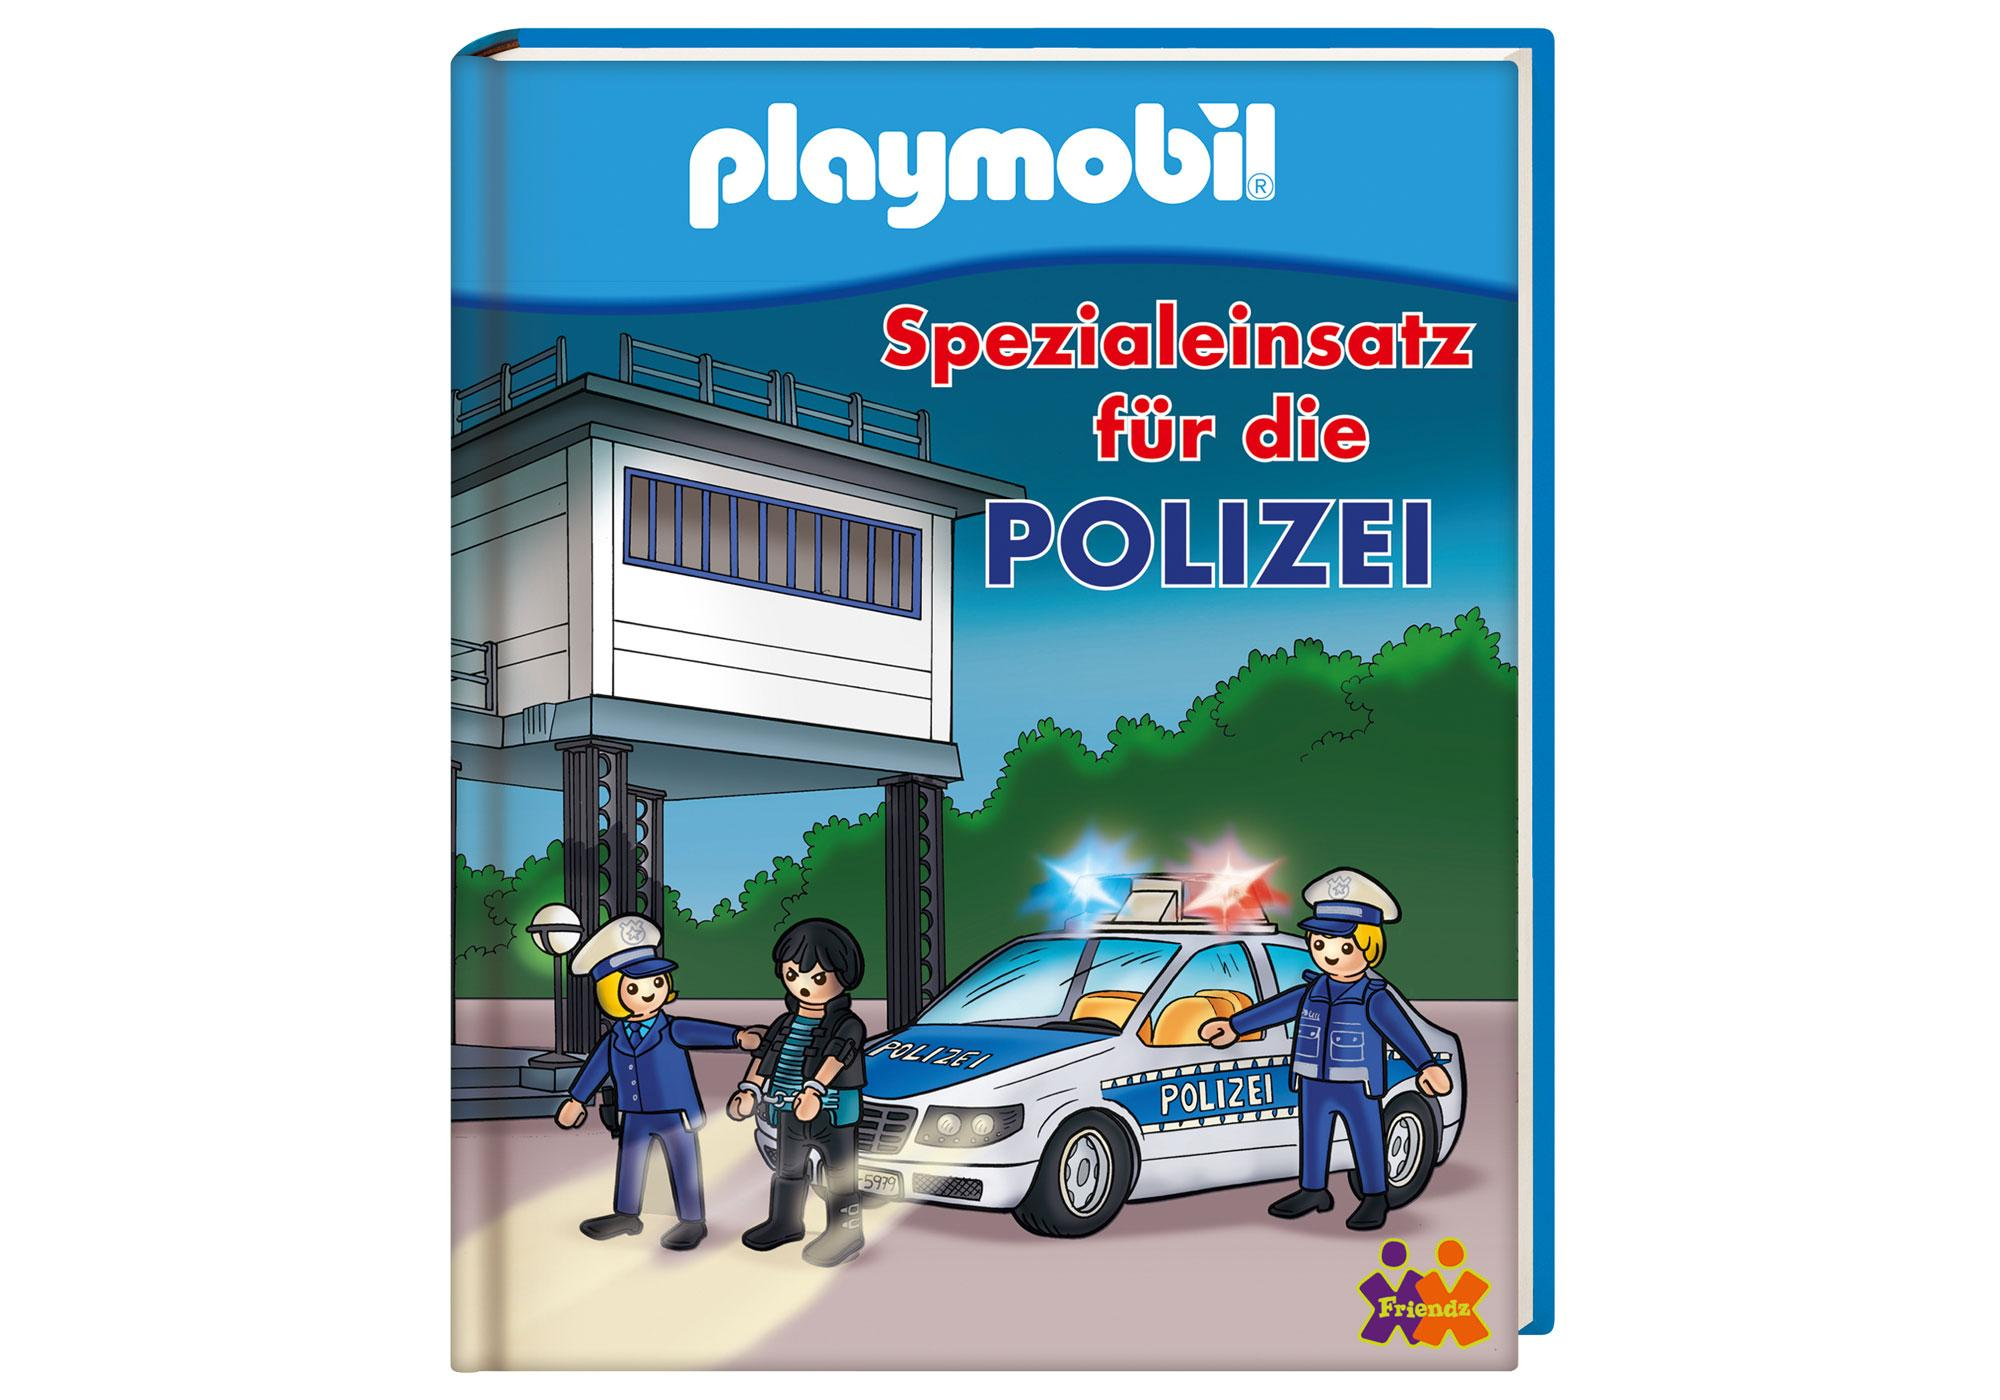 http://media.playmobil.com/i/playmobil/80090_product_detail